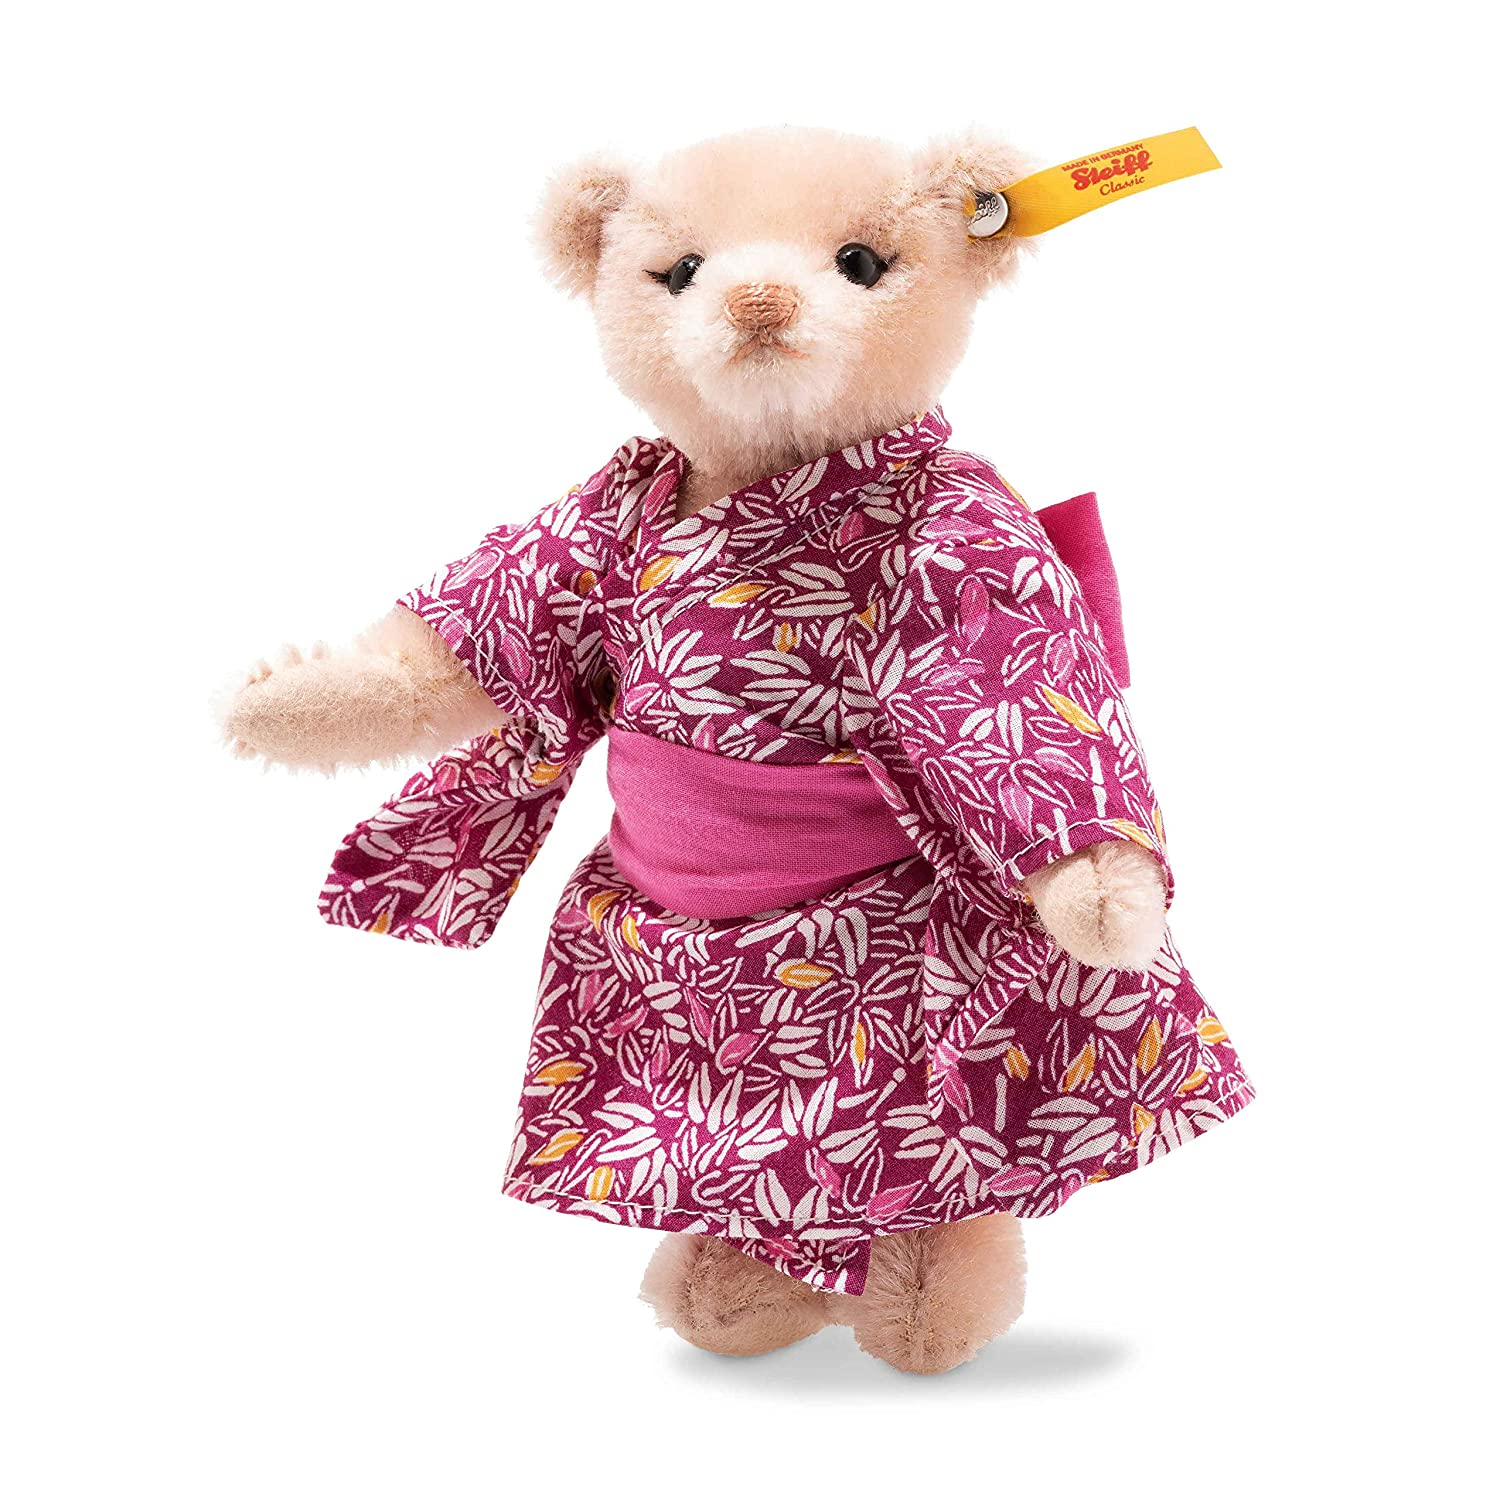 Steiff Great Escapes Tokyo Teddy Bear in Gift Box Pink